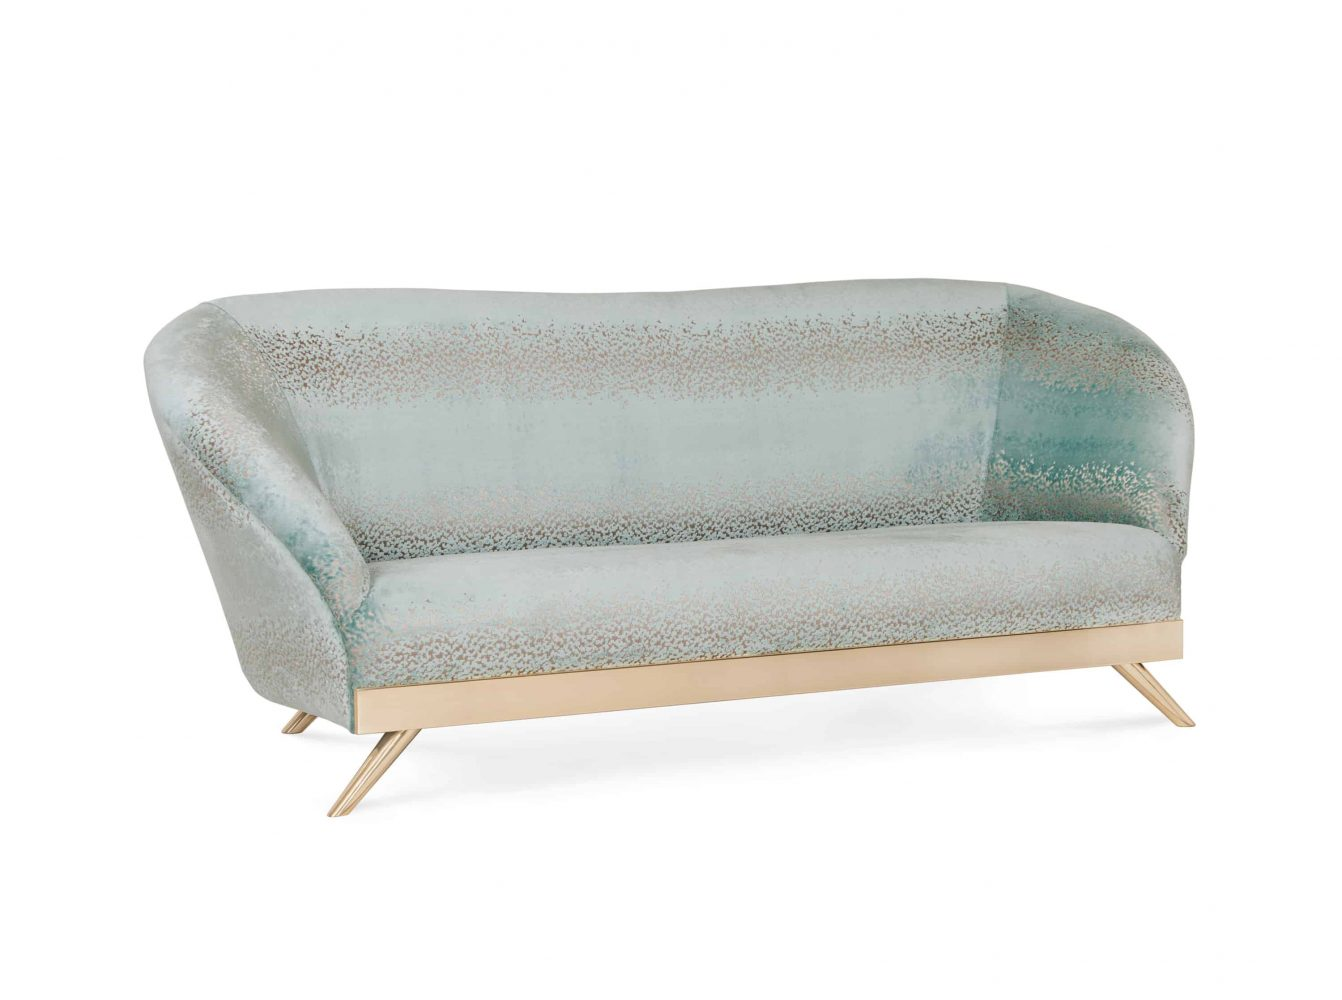 Greenapple Cambridge Sofa